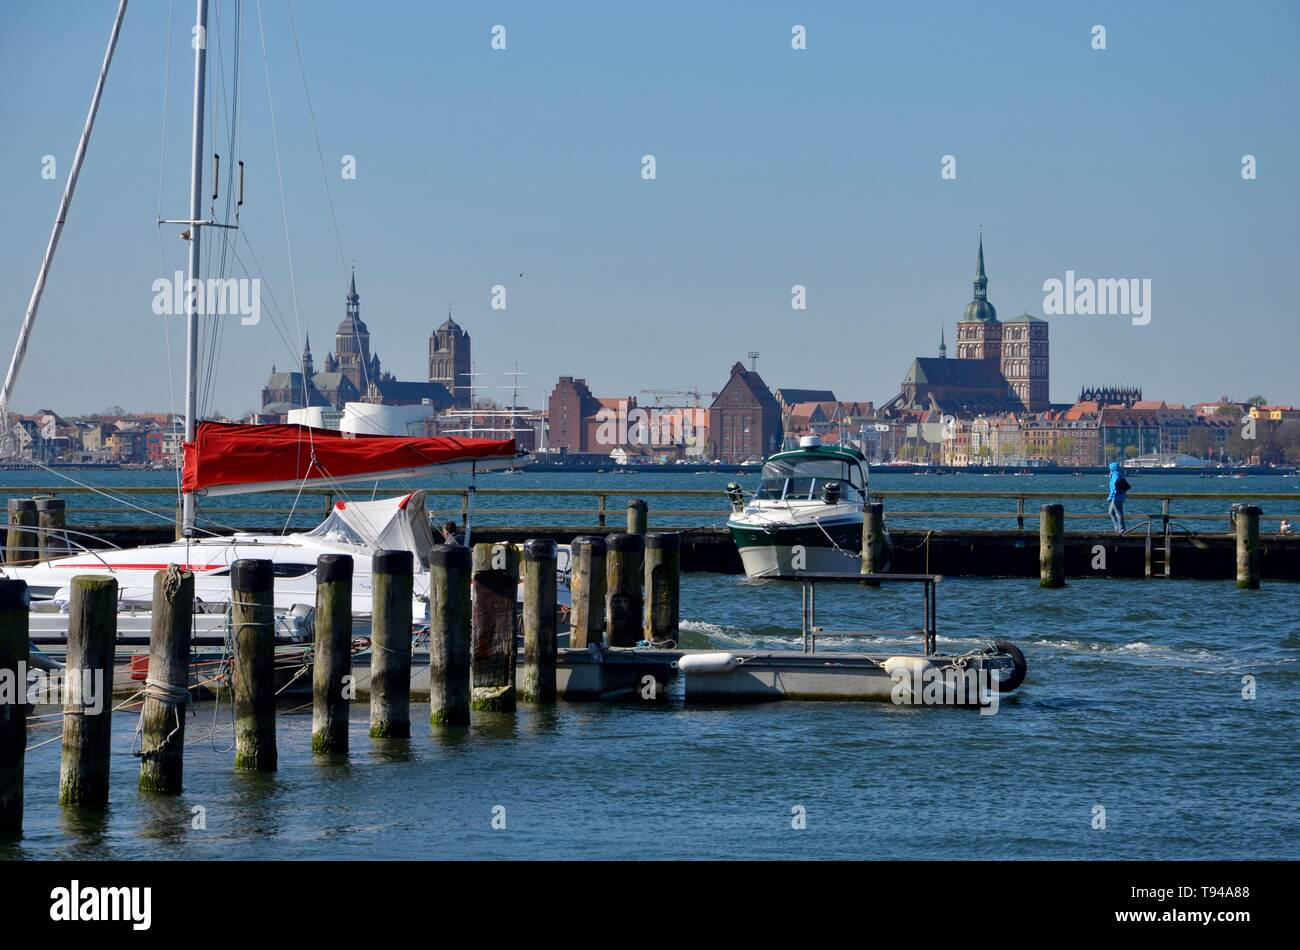 Island Ruegen in Germany, Mecklenburg West Pomerania, Baltic sea, harbor of the spa town Altefaehr,view to the skyline of the hanseatic city Stralsund - Stock Image